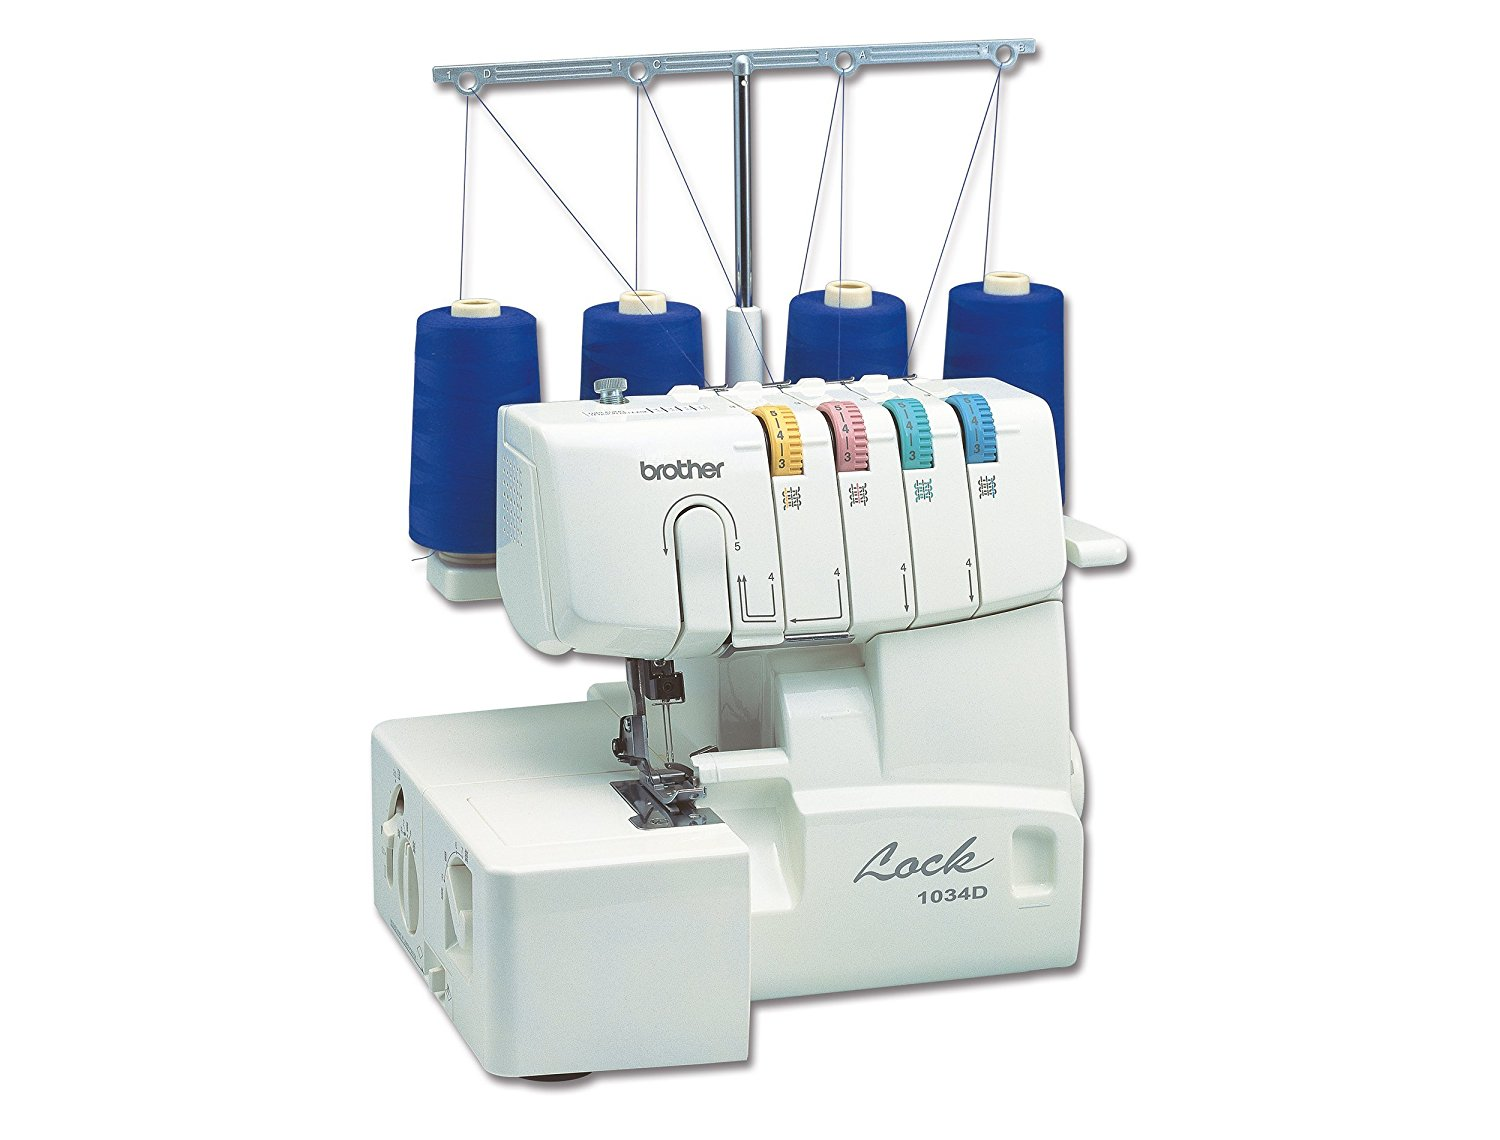 best serger machine: Brother 1034D 3/4 Thread Serger with Differential Feed